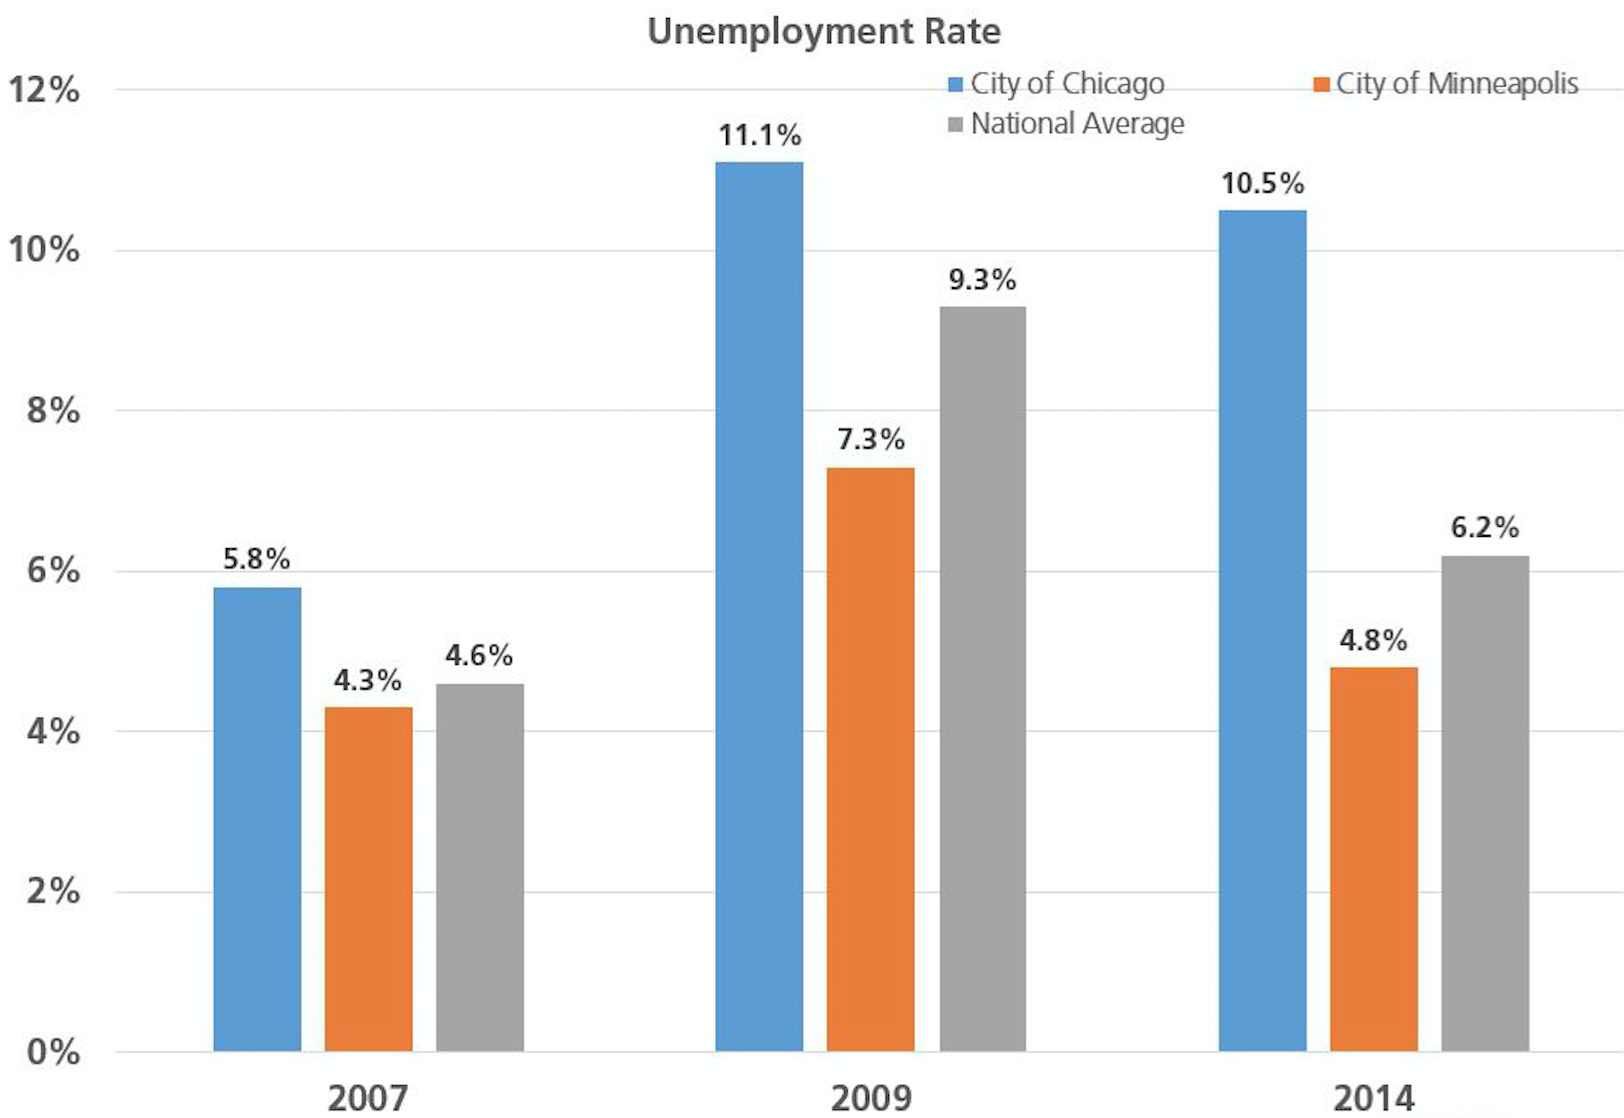 Source:  U.S. Bureau of Labor Statistics